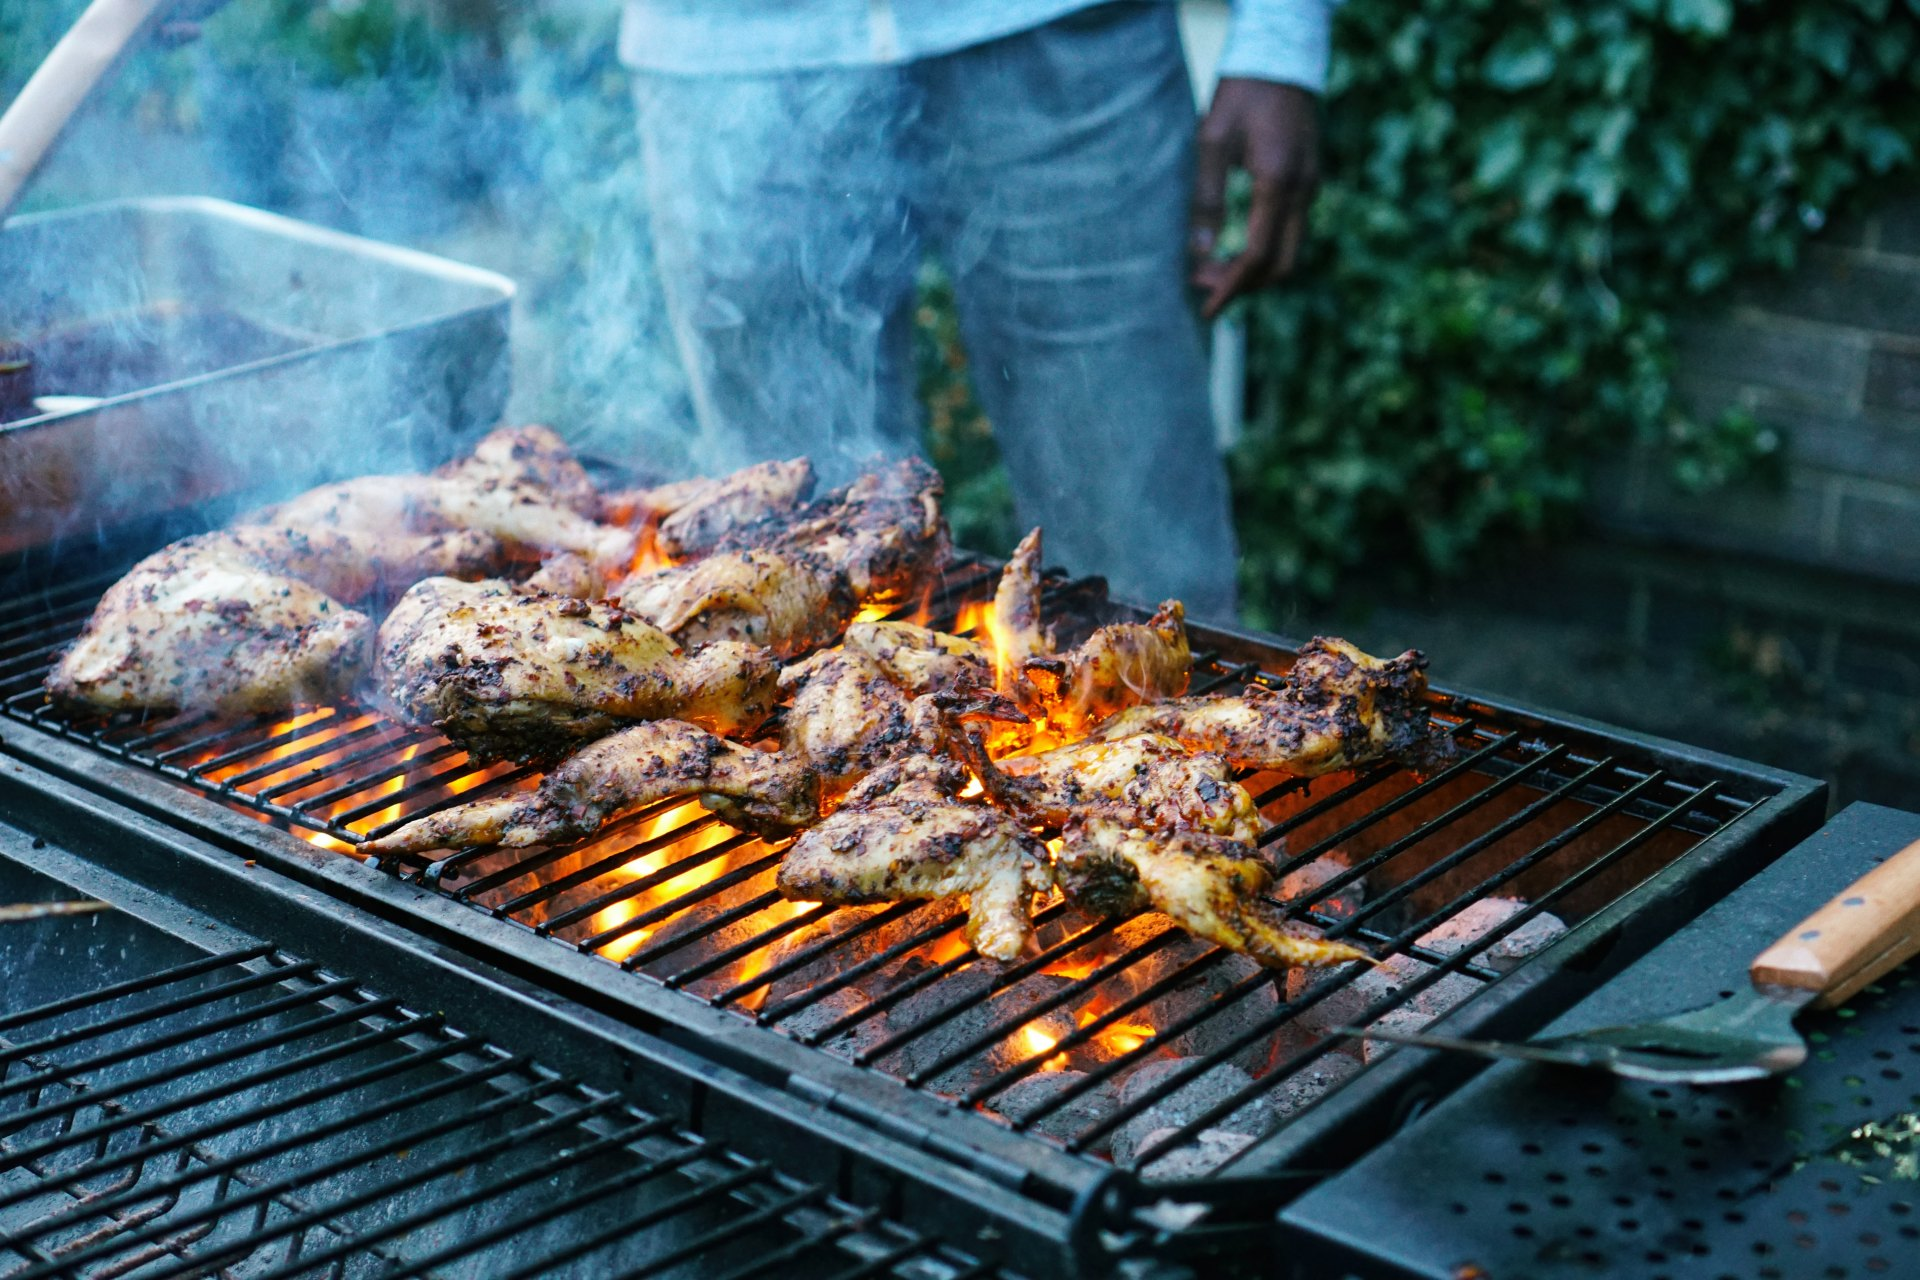 Up your braai game this Heritage Day with delicious recipes from two local foodies, Unaty Daniel and Justin Bonello.